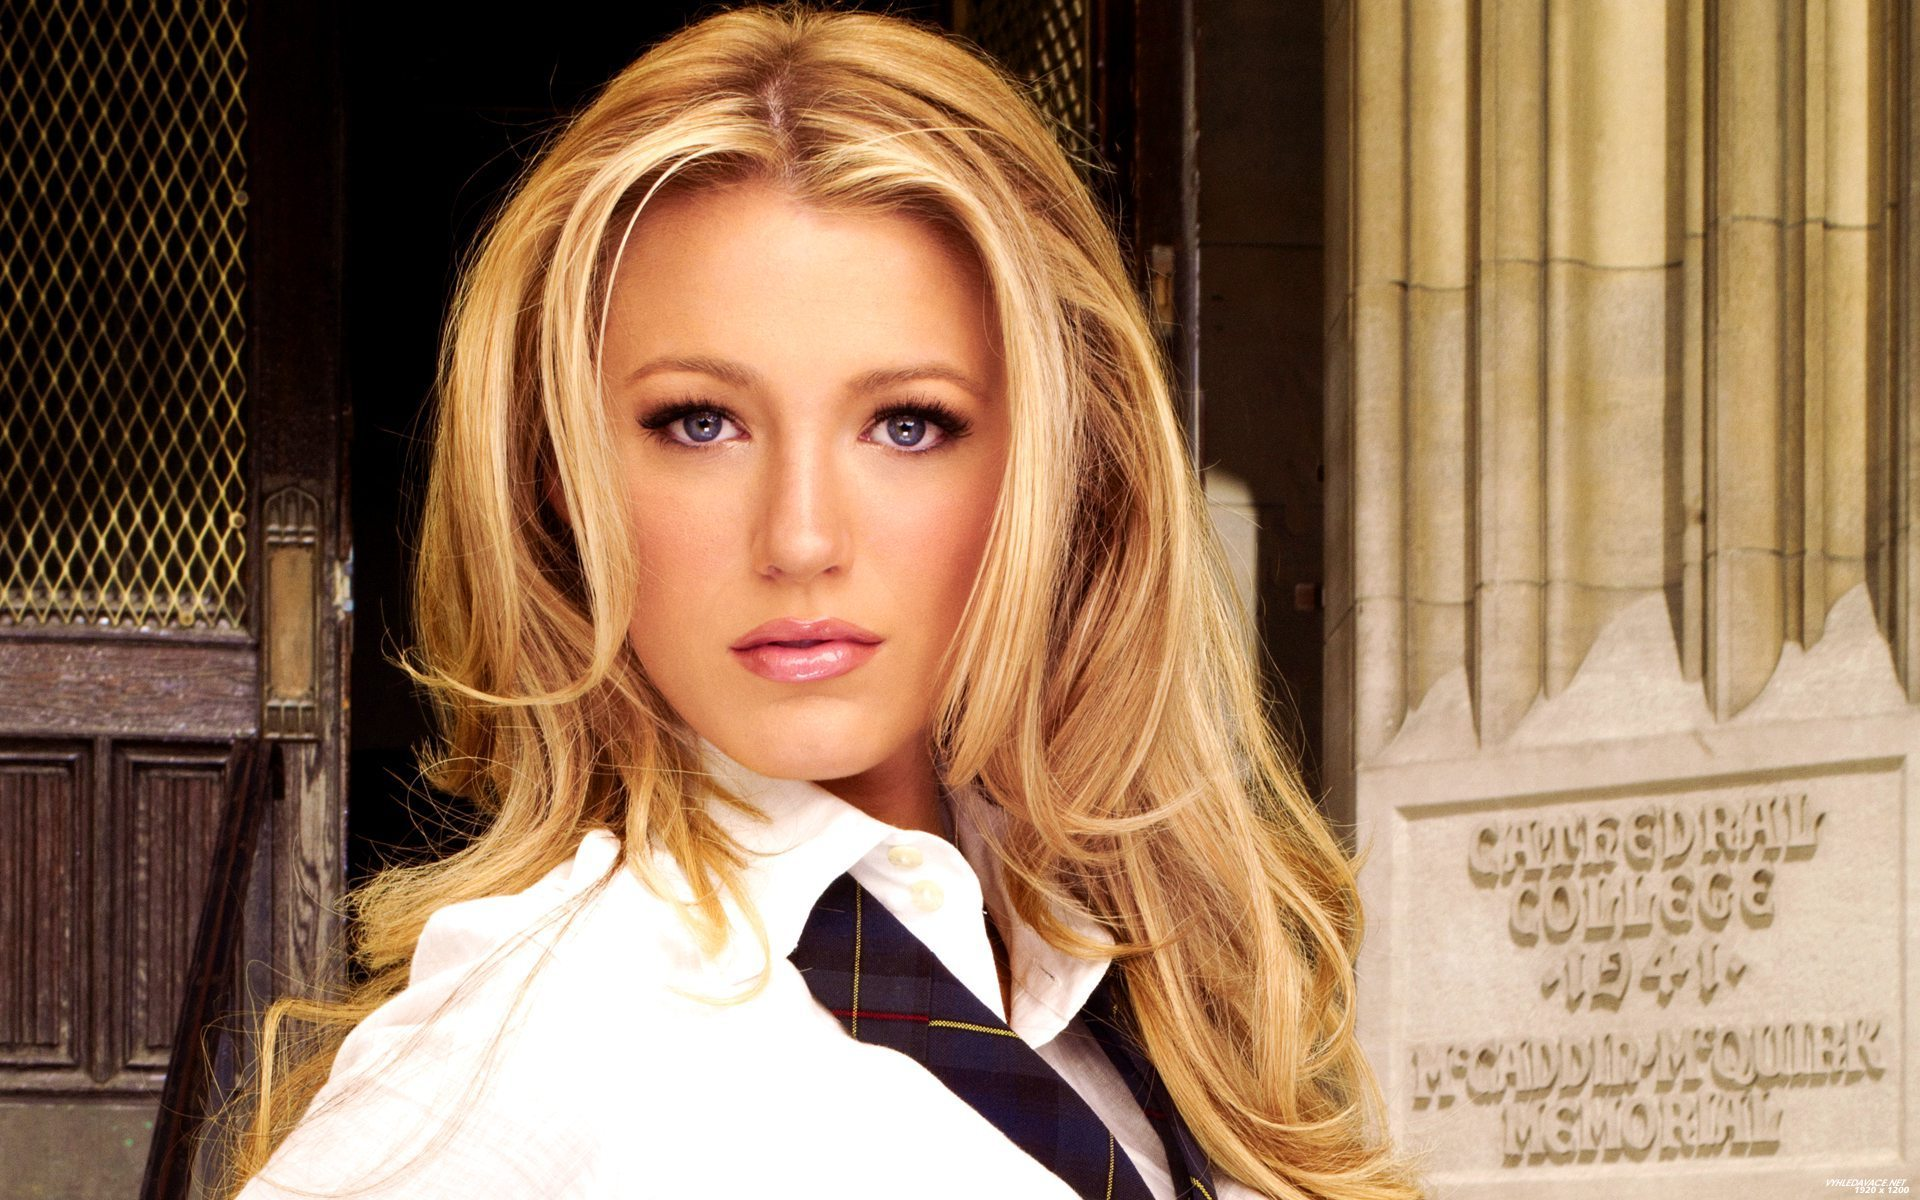 ♥Blake♥ - Blake Lively Wallpaper (5308505) - Fanpop